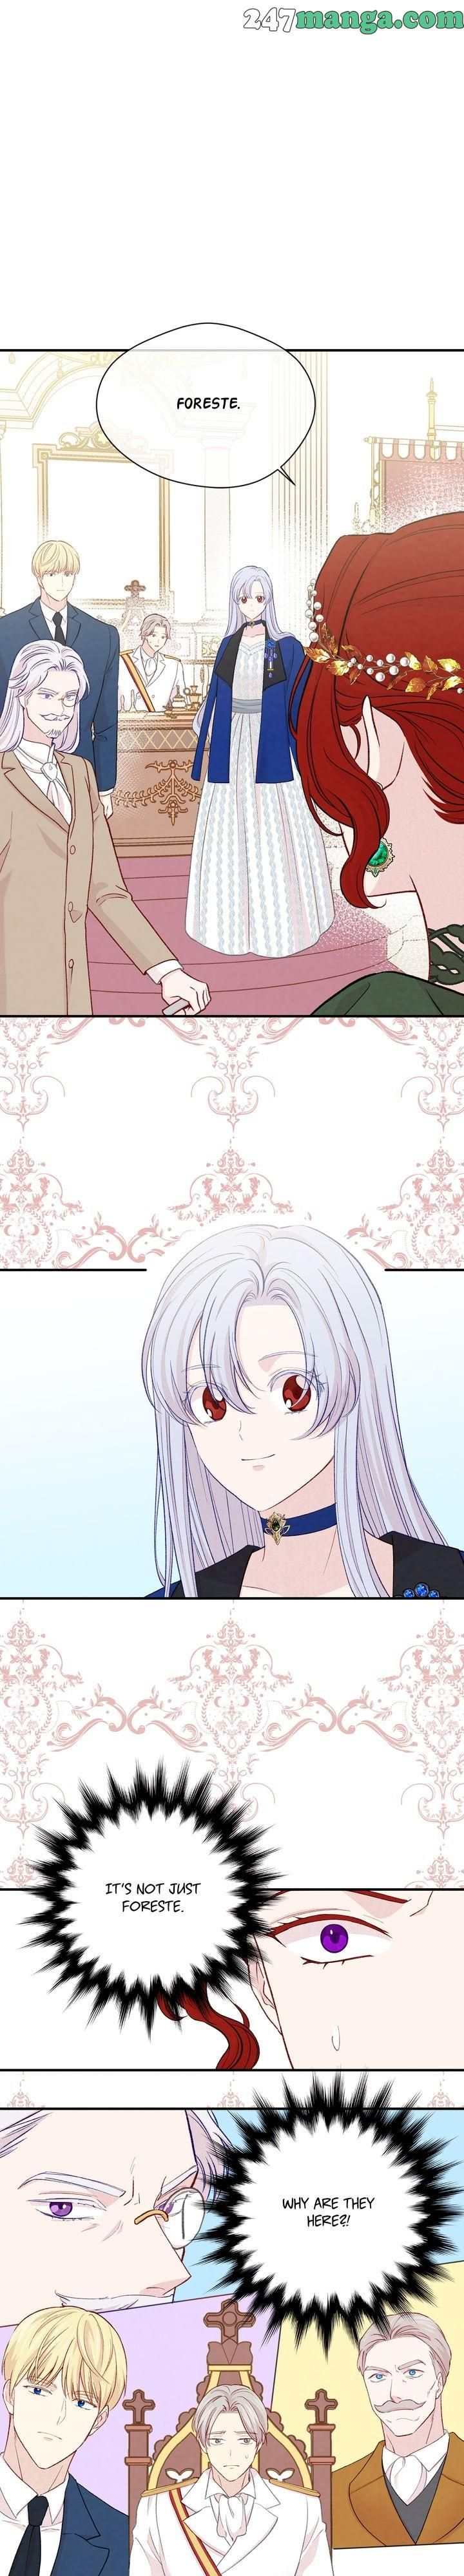 Read Iris – Lady With A Smartphone Chapter 115